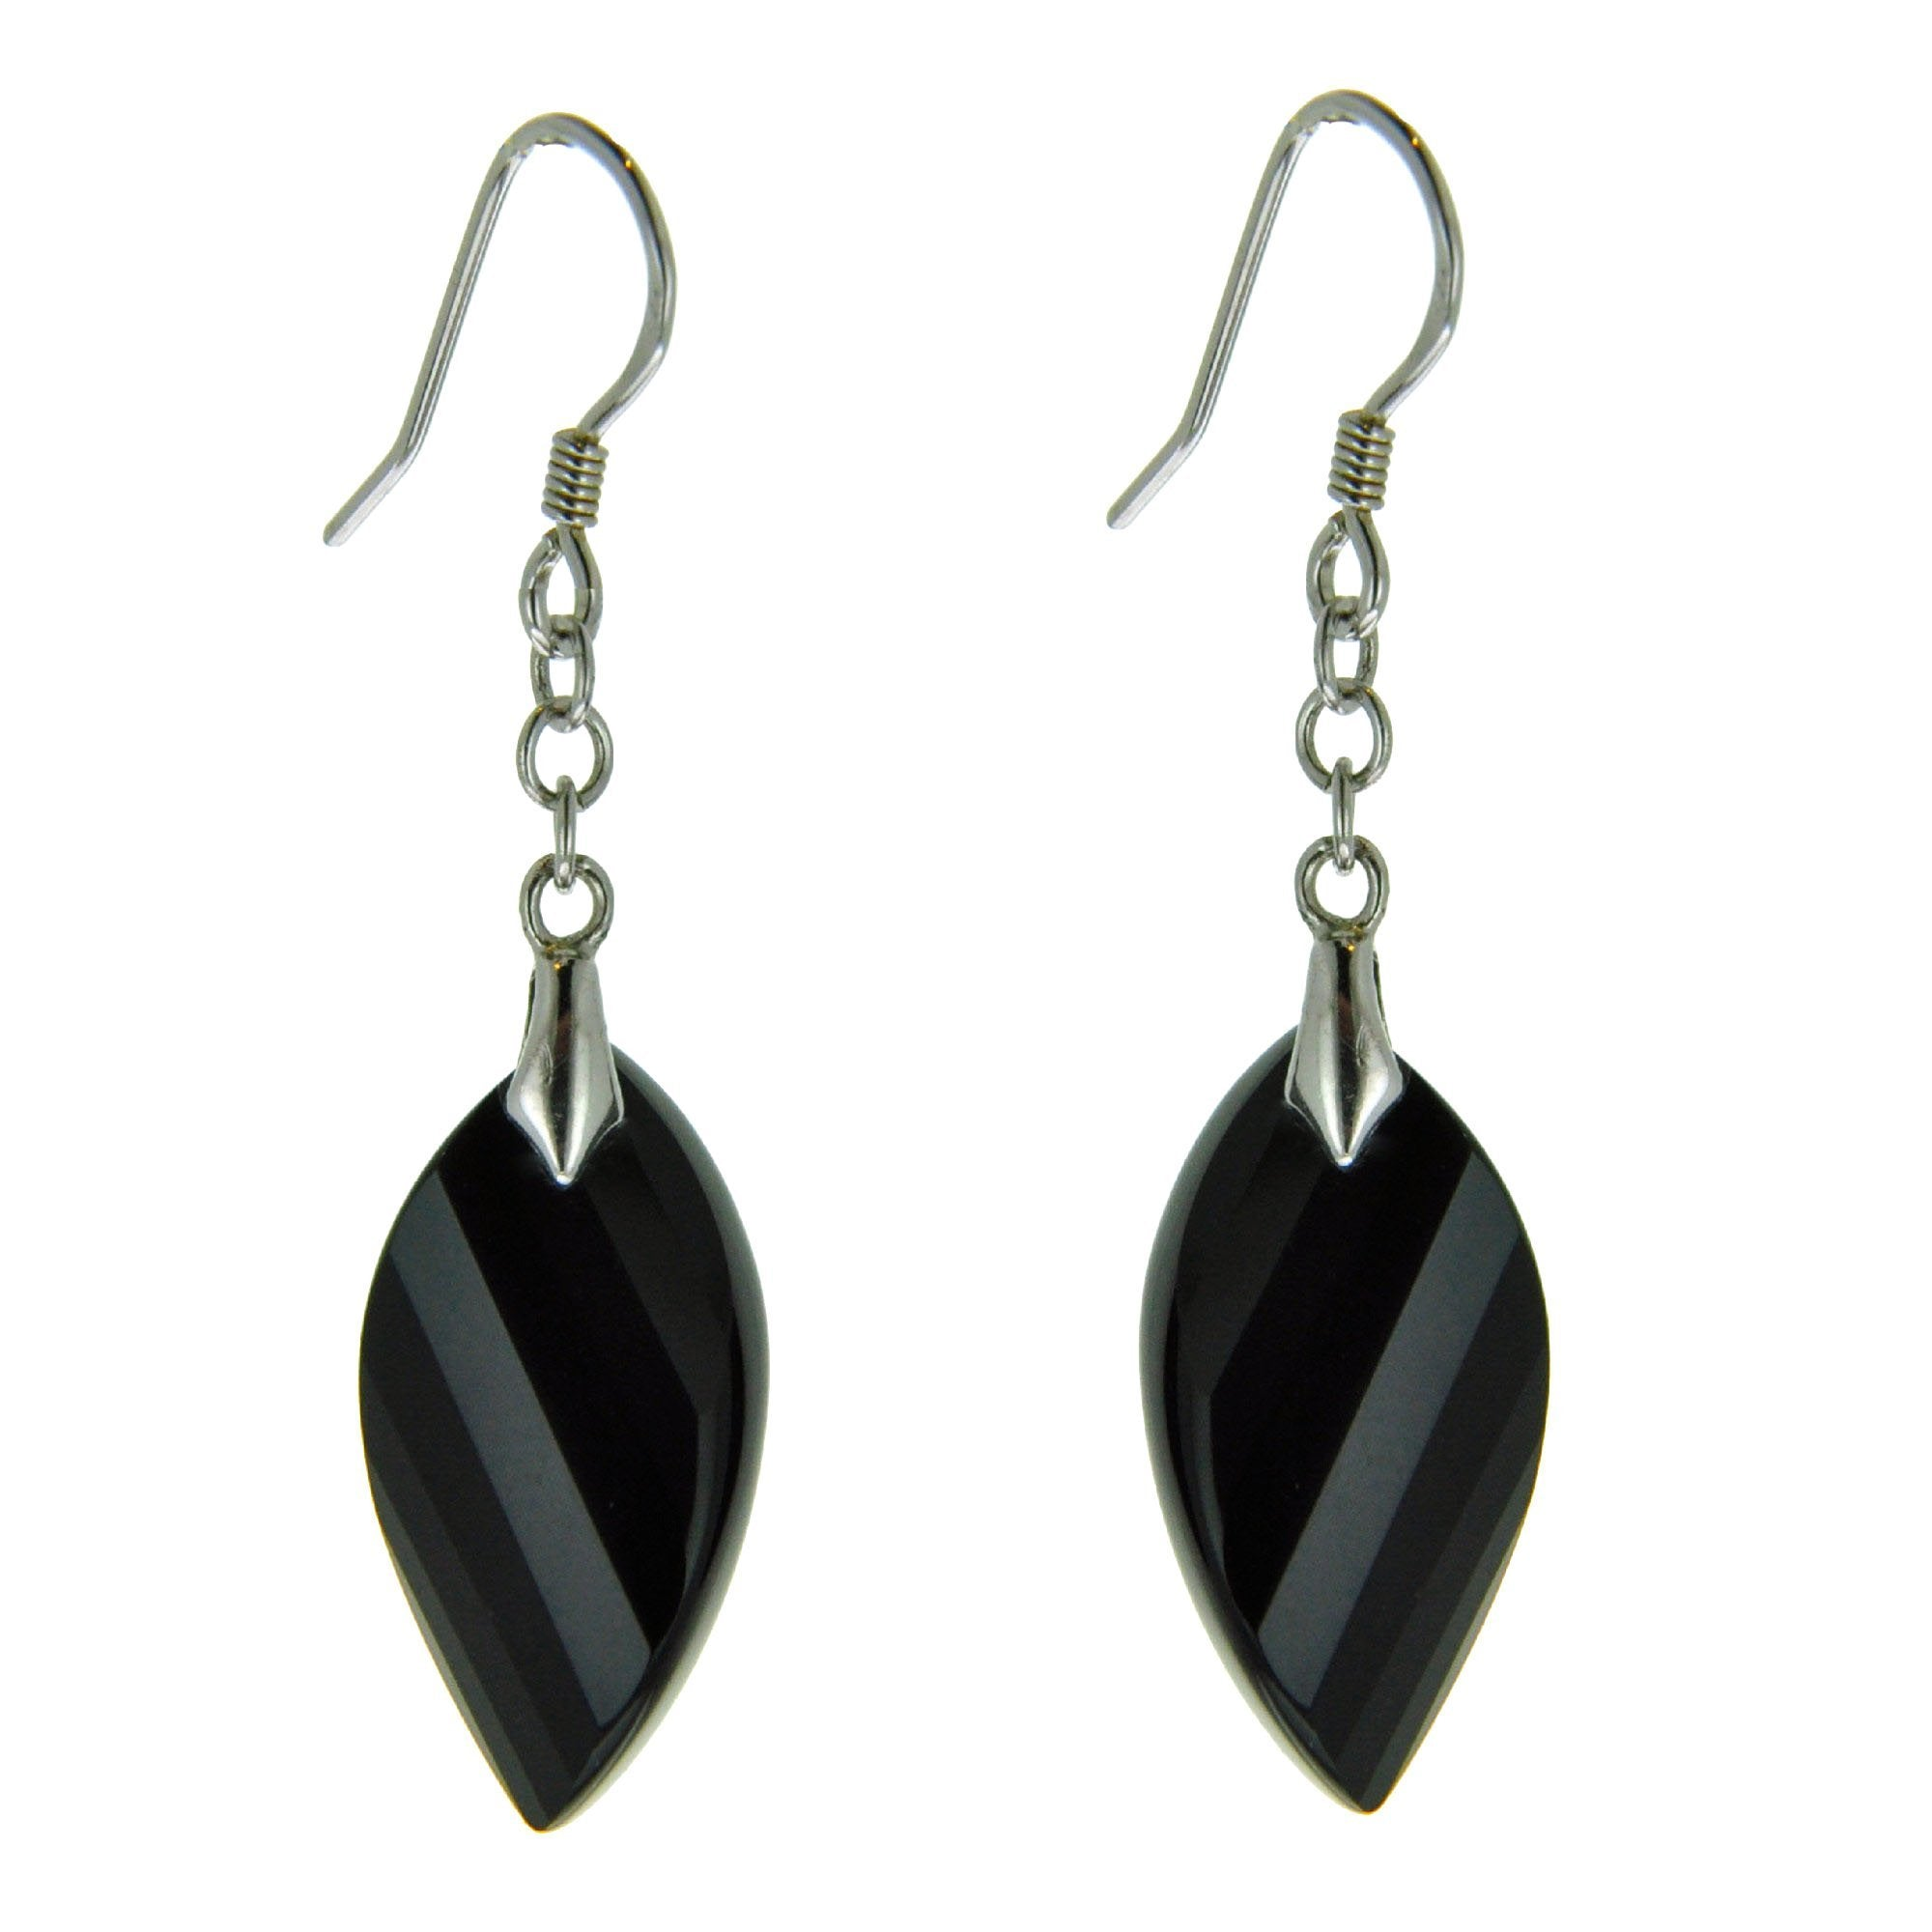 Earrings Genuine Black Onyx Long Hook For Women Sterling Silver Faceted Cut Jewelery Marquise Shape Charm Z61OH3